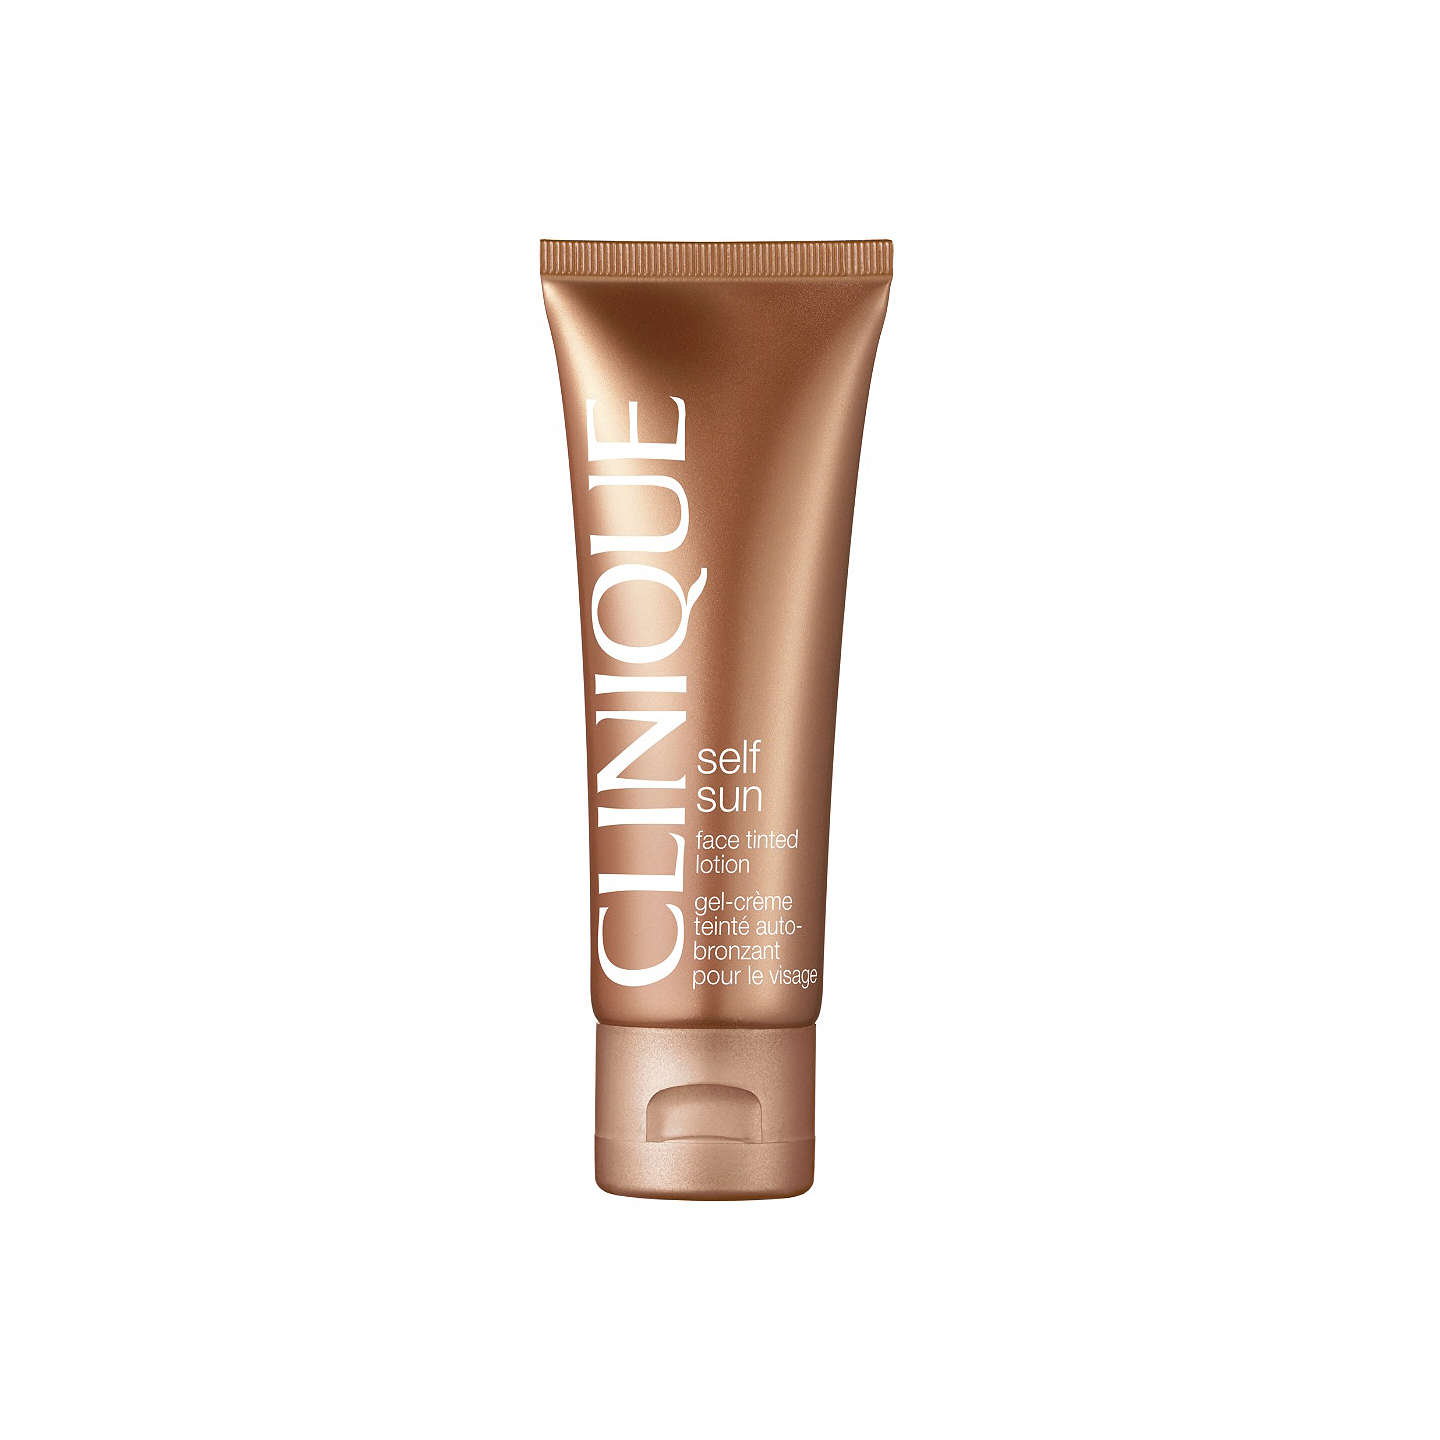 Clinique Body Cream Spf40 150ml At John Lewis: Clinique Face Tinted Lotion, 50ml